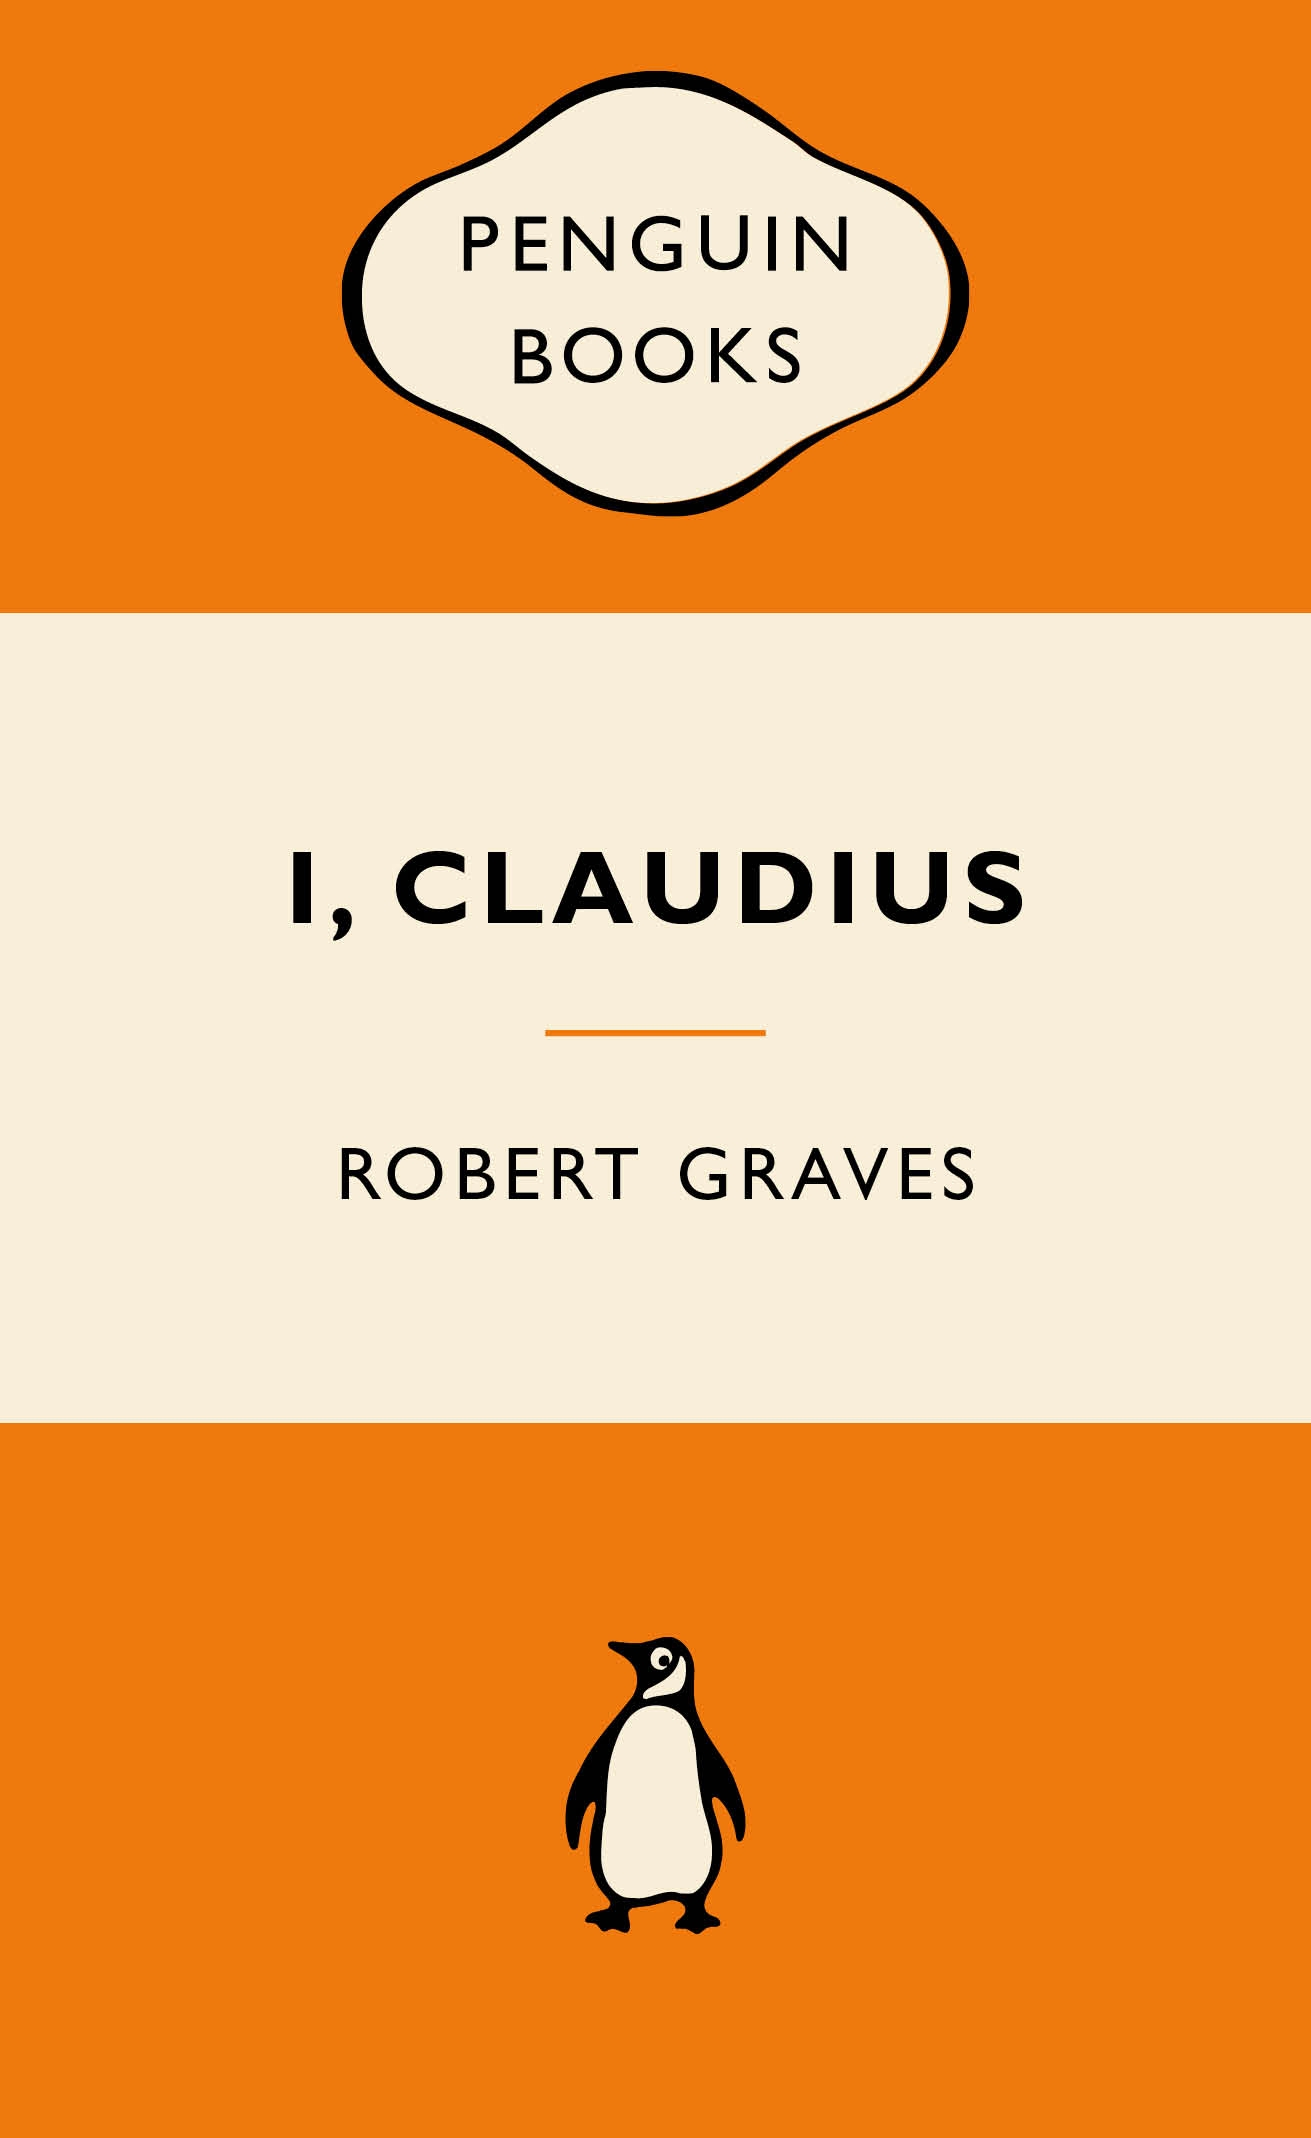 Penguin Book Cover Postcards From ~ I claudius popular penguins by robert graves penguin